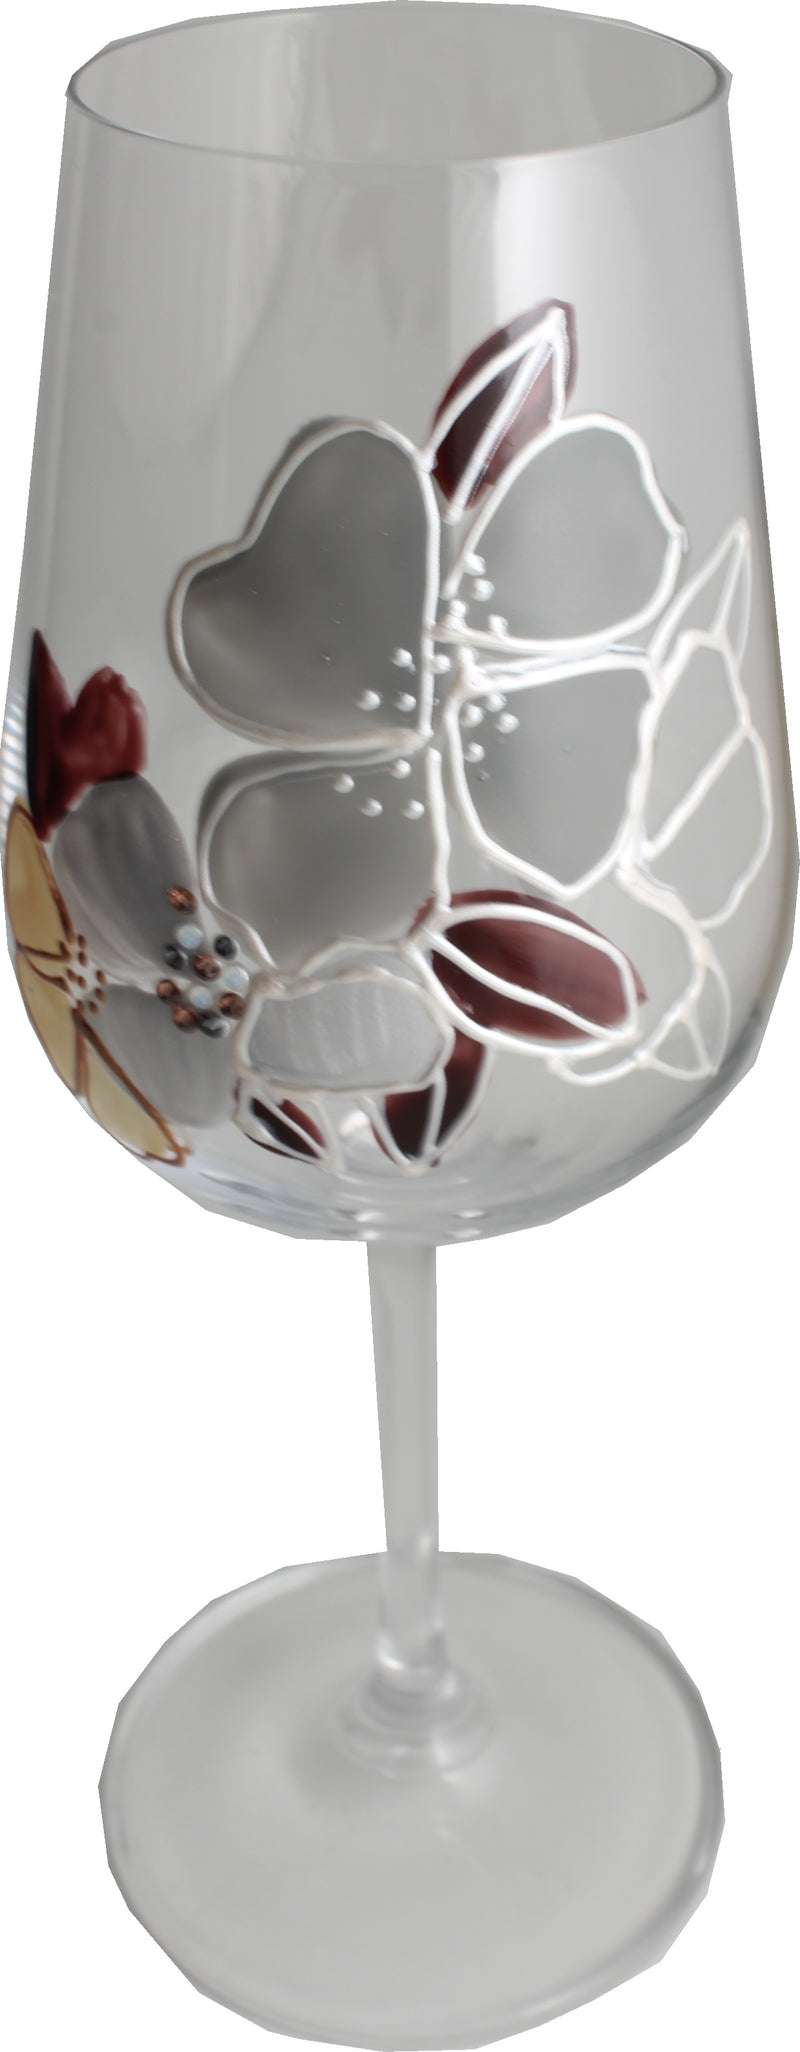 Wine Glass With Titanium Crystal: Luxury with Crystals